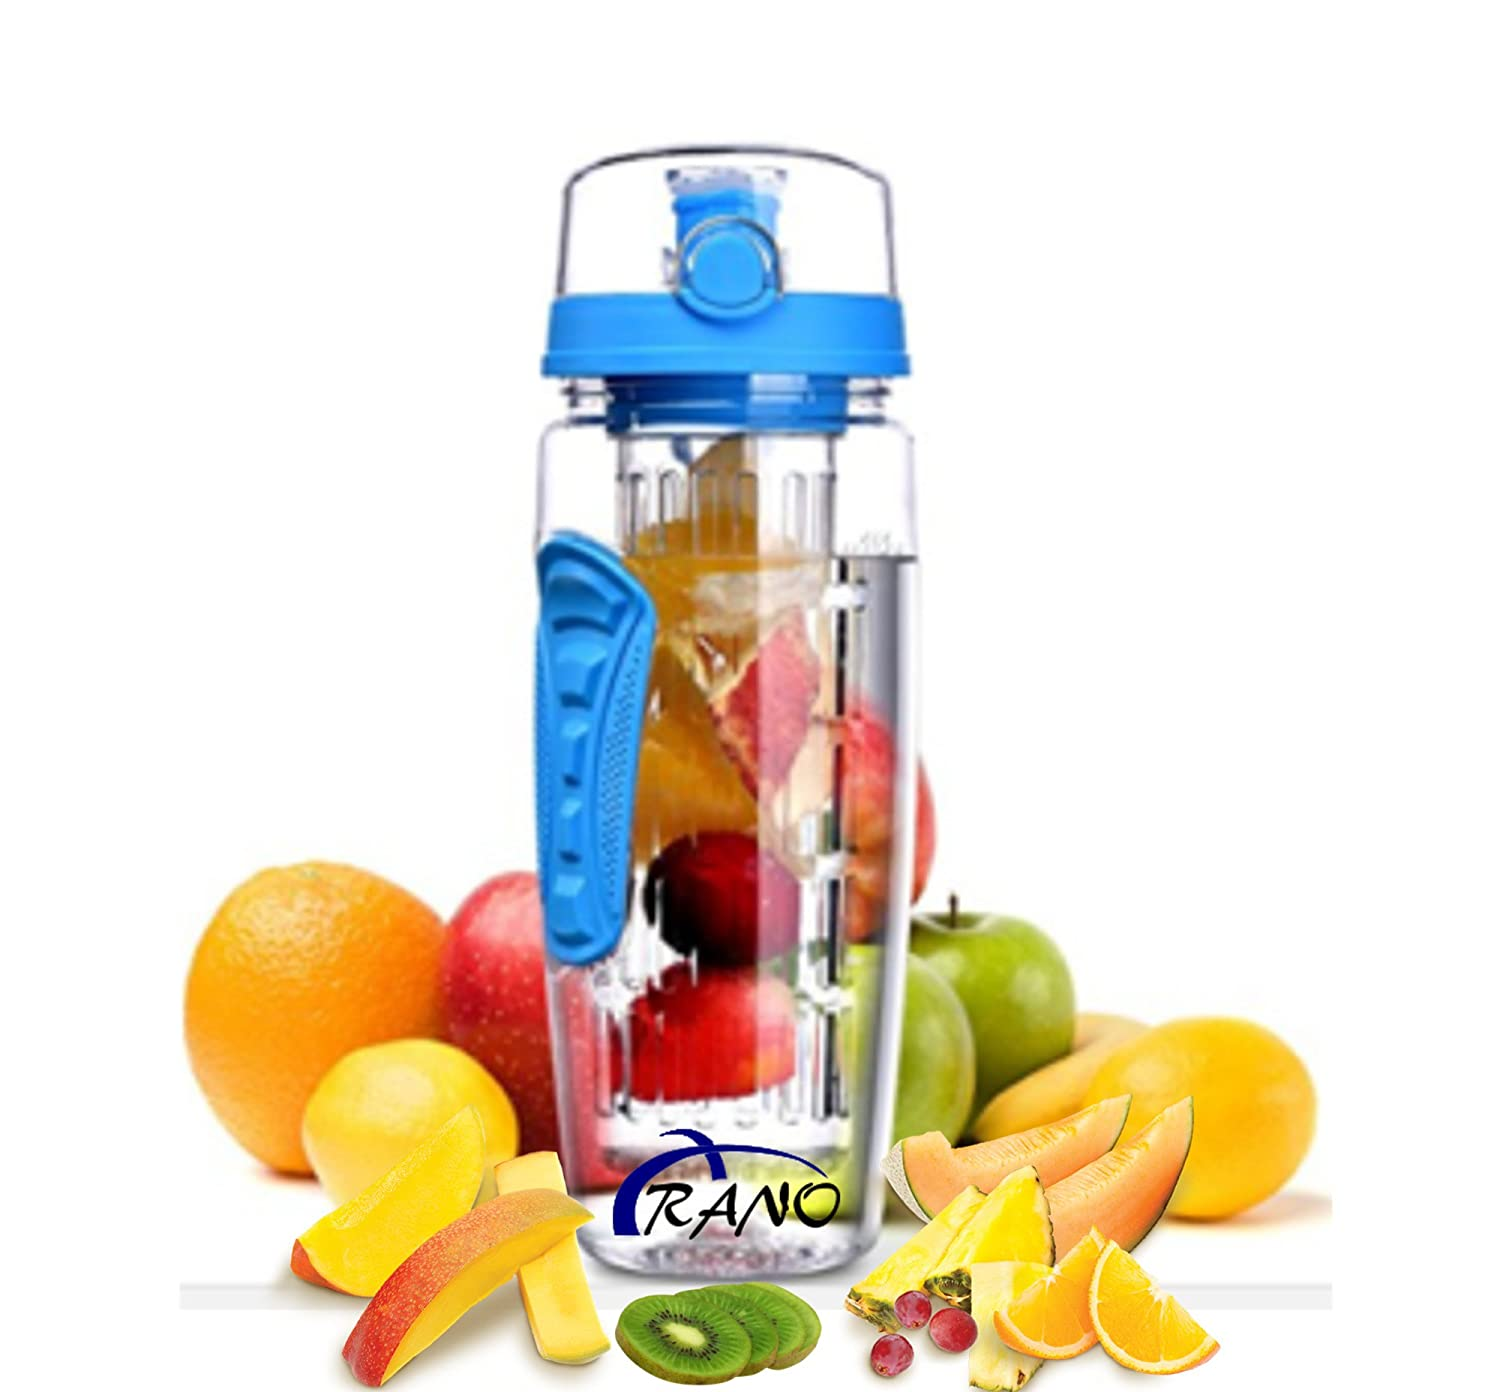 Arano 32オンスBPAフリーFruit Infuser水ボトル、粉砕、chemical-resistant Tritan withボタンflip-top and Long Infuser for Daily Hydrationジムスポーツキャンプ、水を使用Flavoring B076H31ZFD ブルー